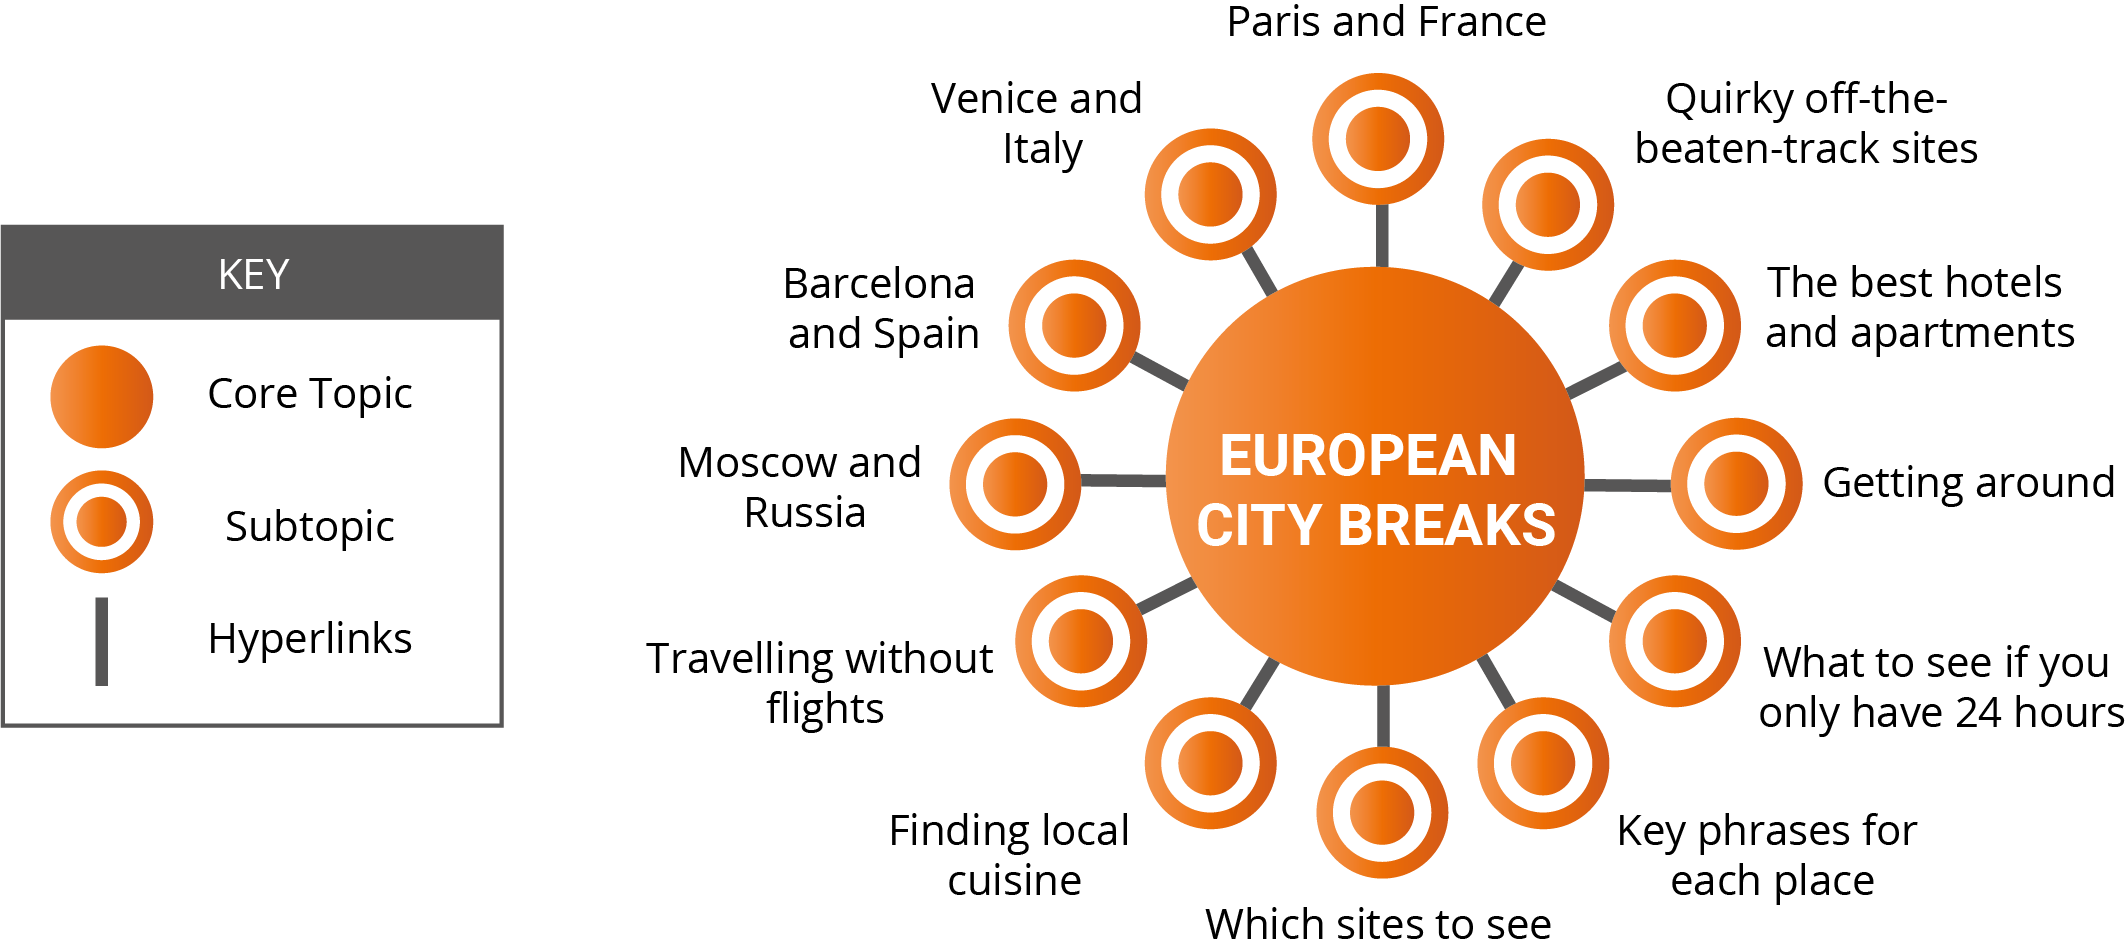 European city breaks pillar page plan